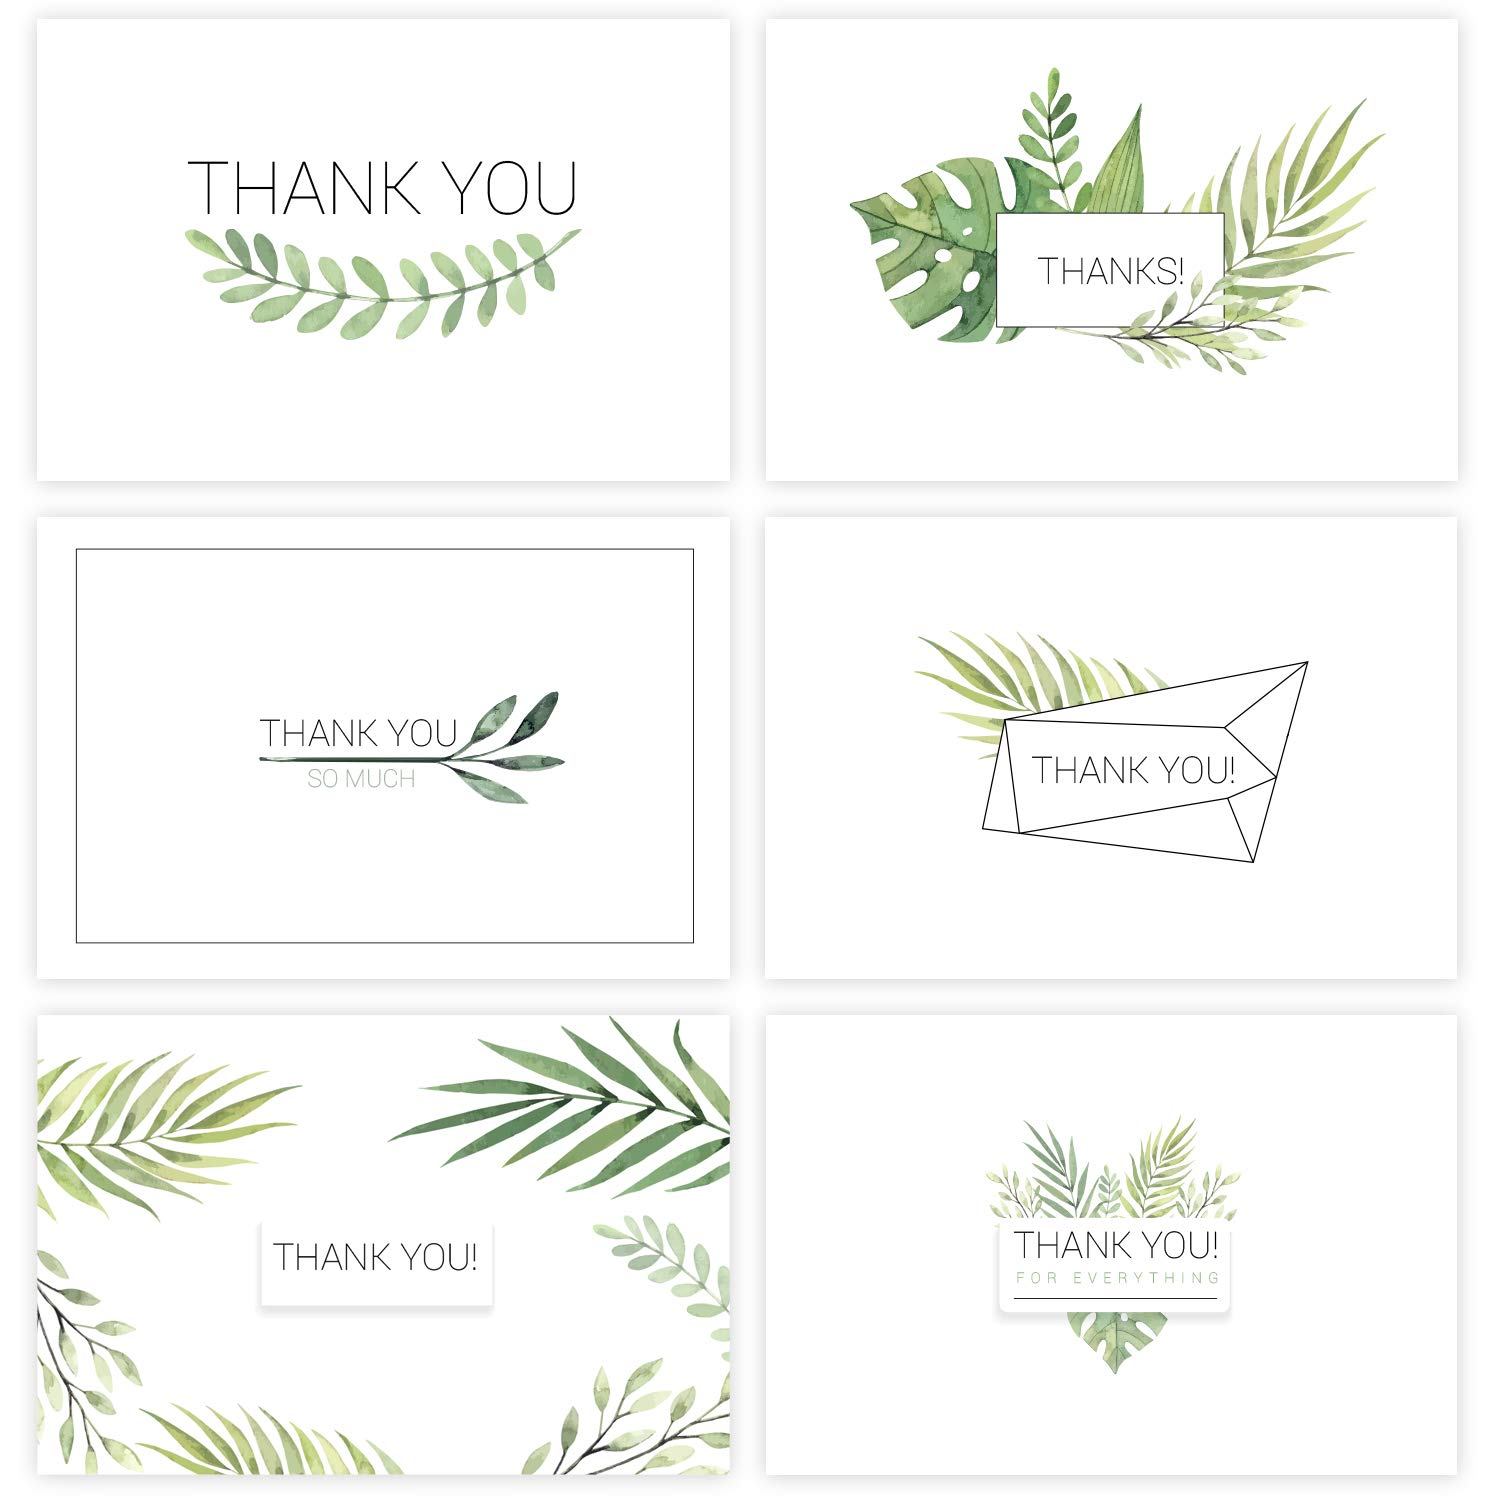 Thank You Cards w/Stickers - 36 Watercolor Floral Thank You Notes Box Set with 36 White Envelopes - For Wedding, Baby and Blank Inside - Perfect Bridal Shower, Business - 4 x 6 Size